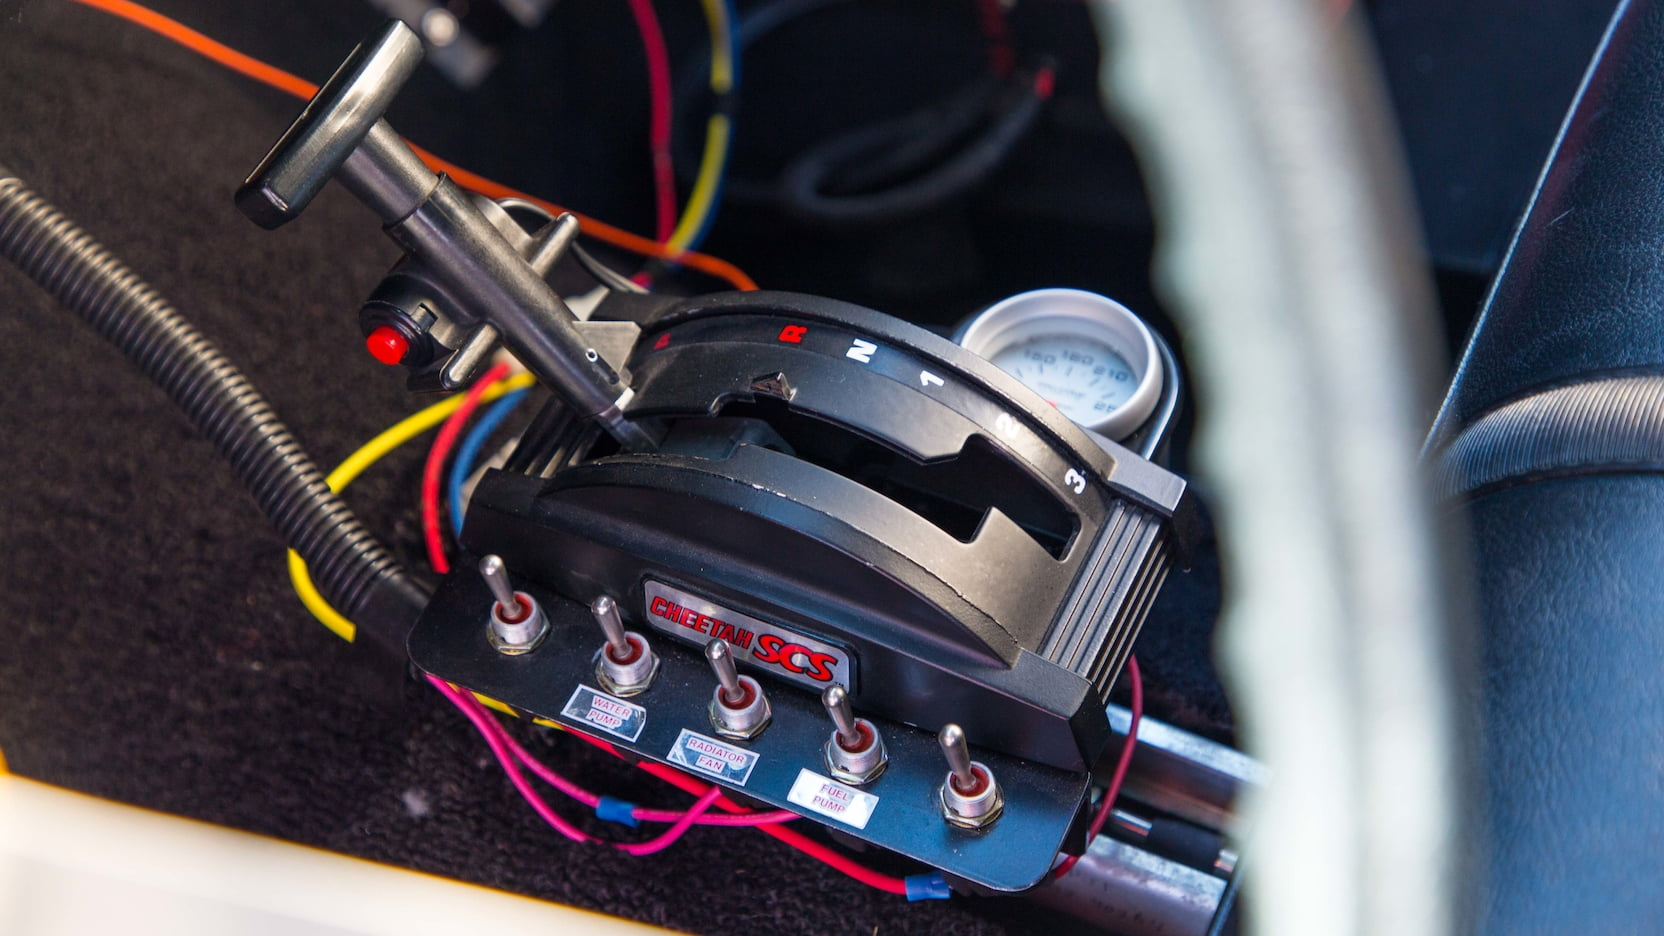 1970 Buick GS Stage II shifter